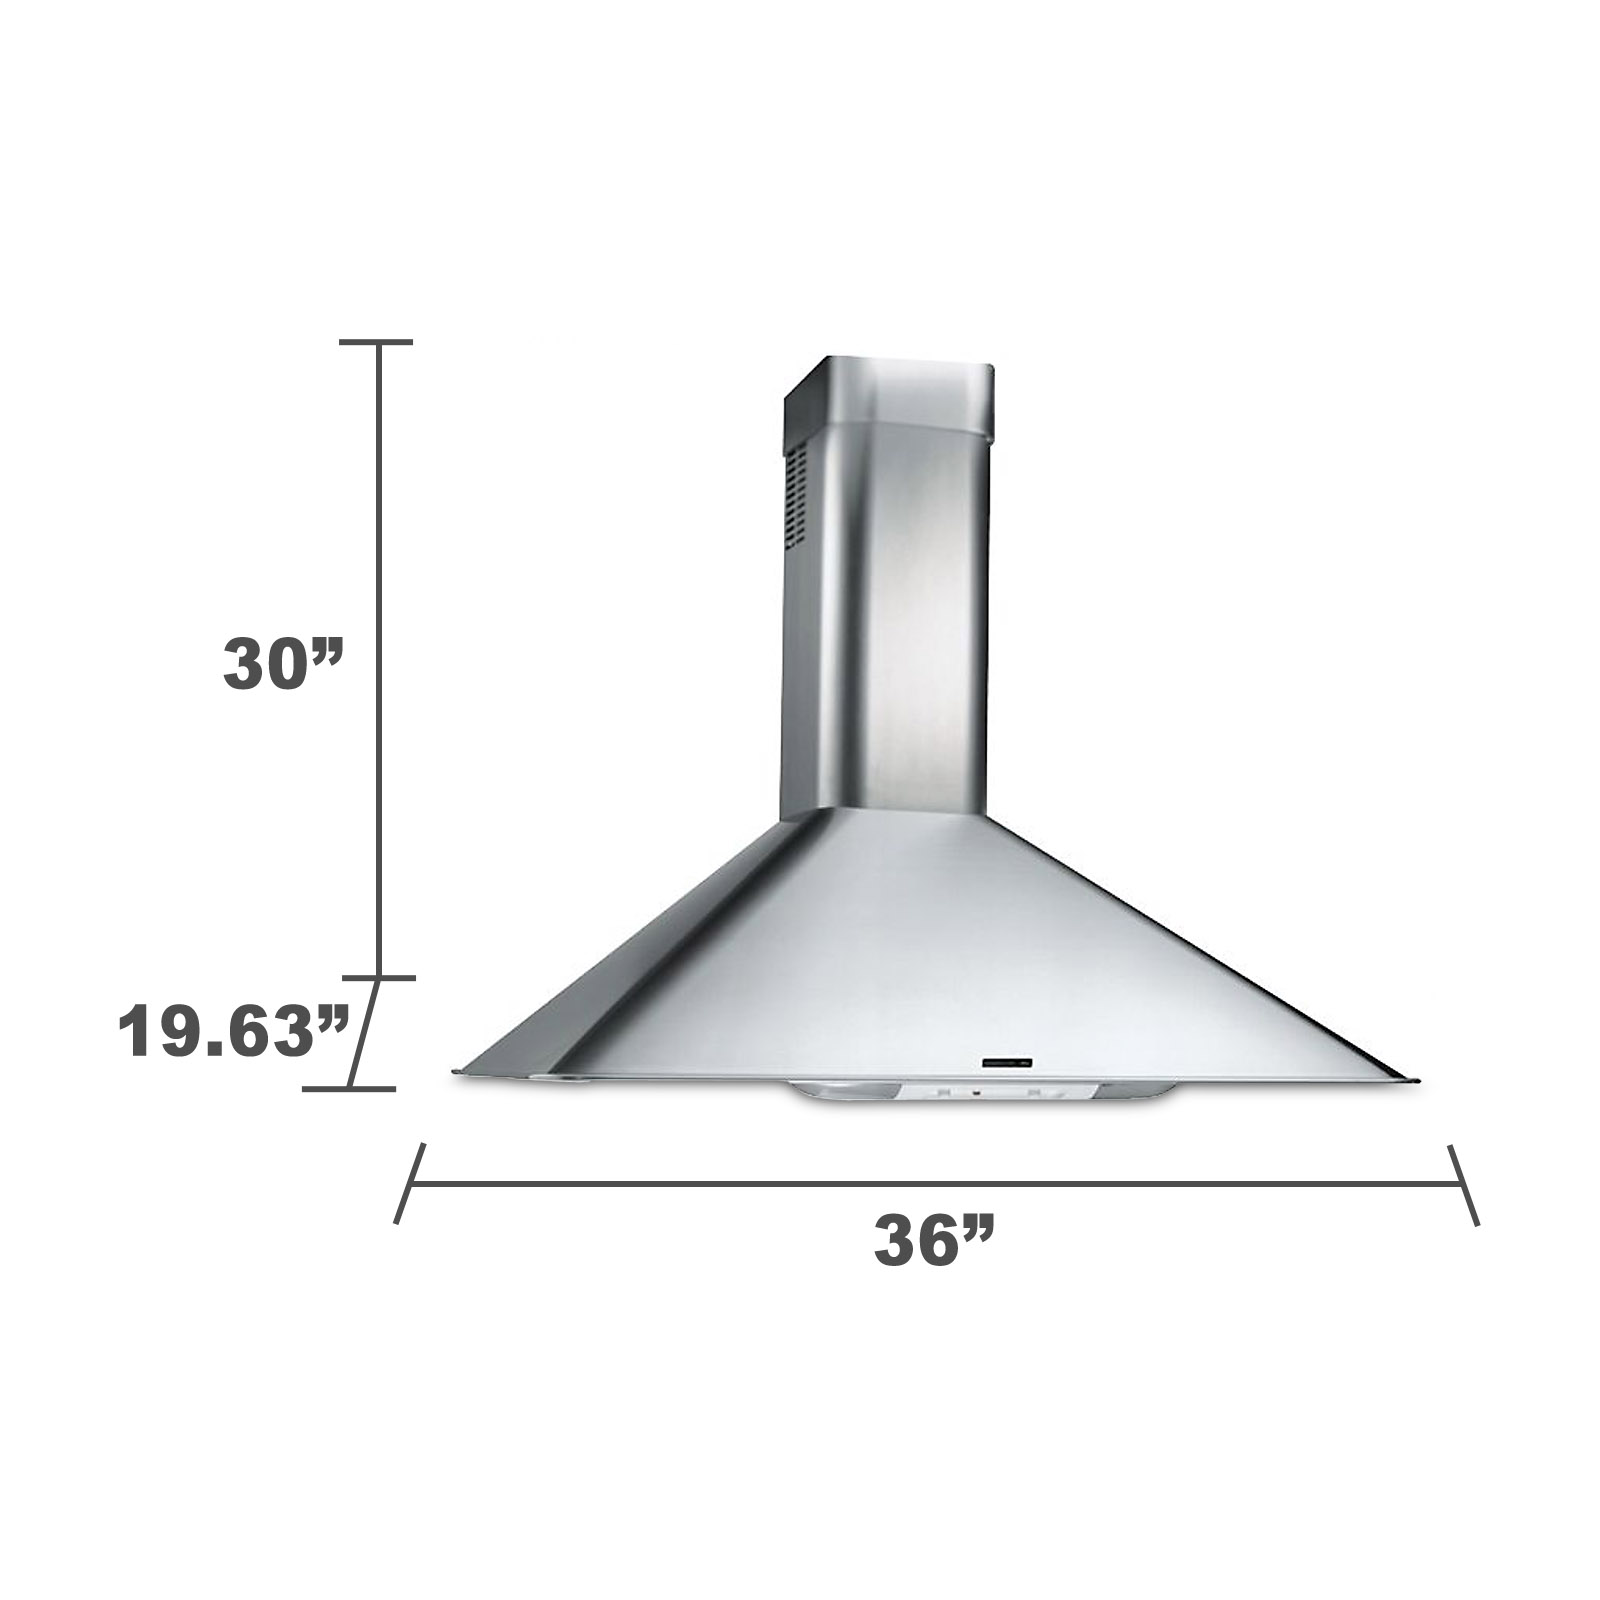 "Kenmore 50363 36"" Italian-Design Chimney Range Hood - Stainless 50363"